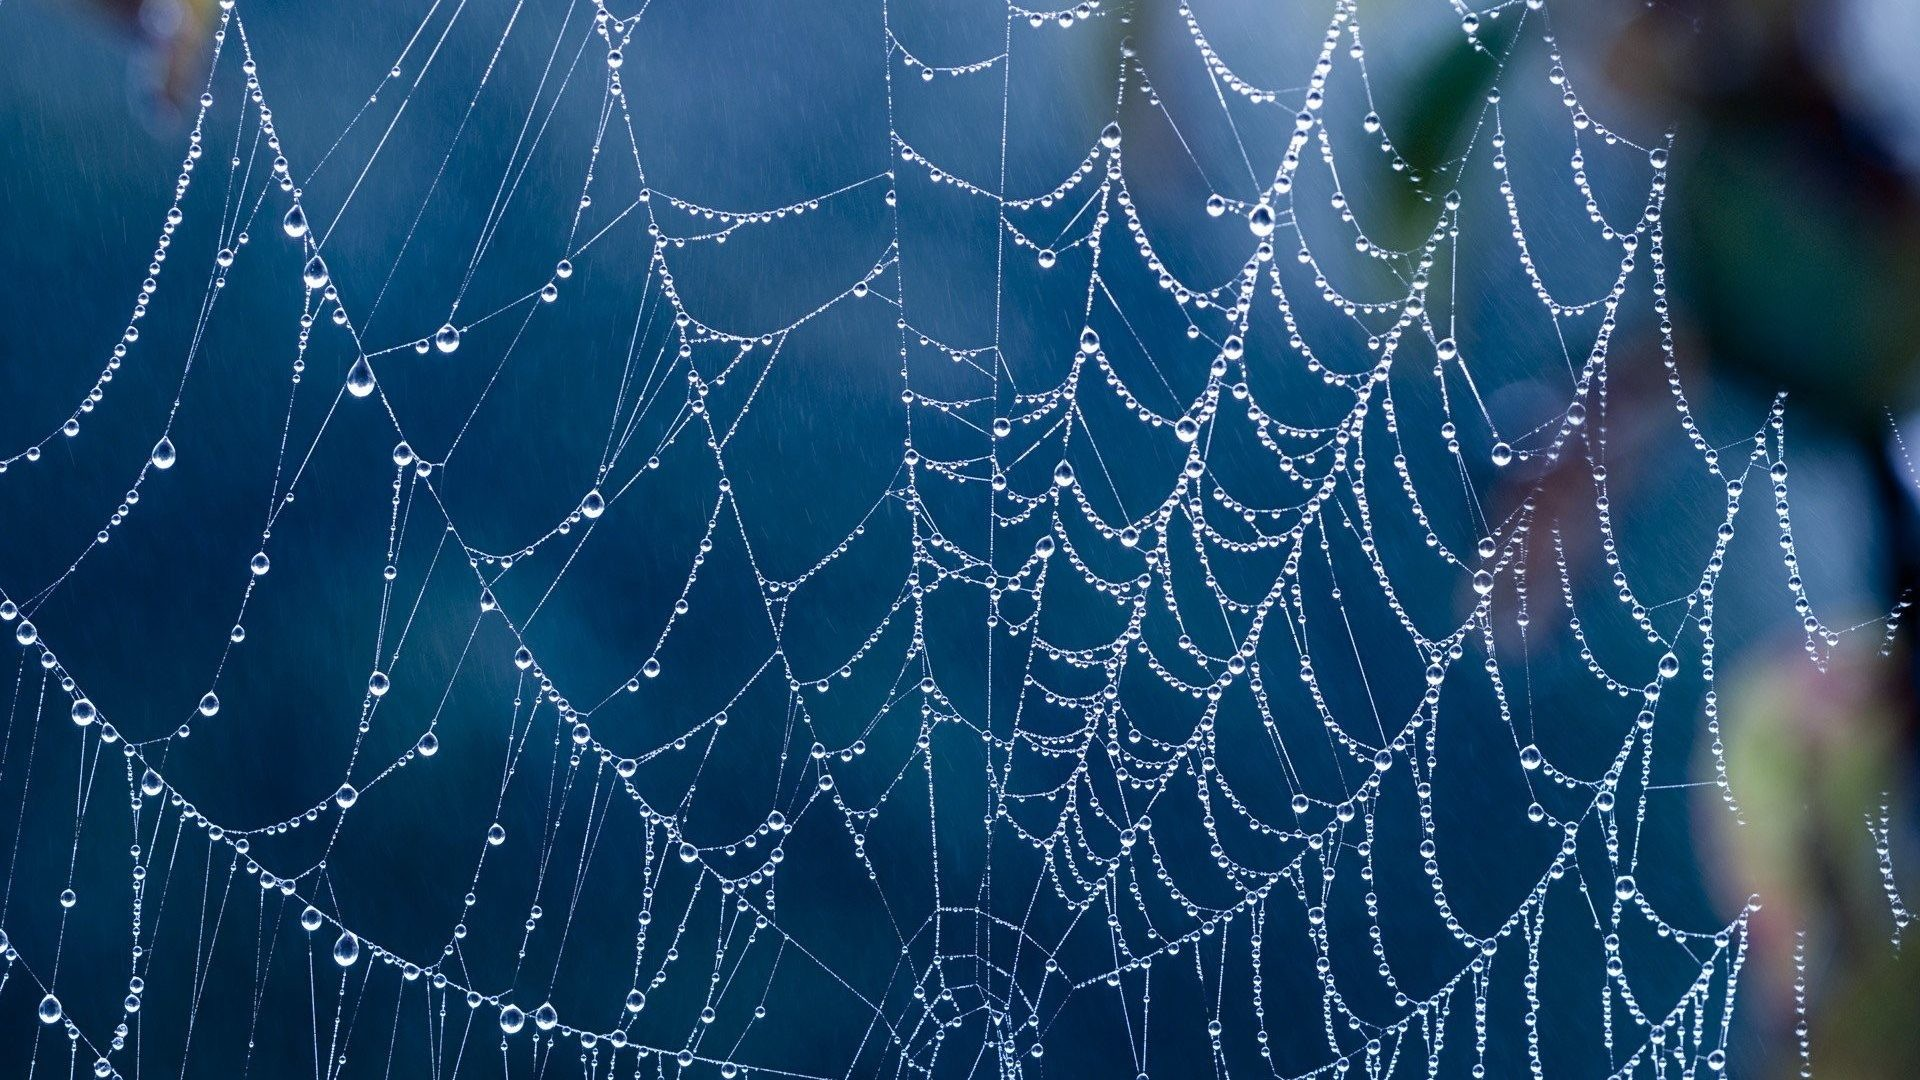 1920x1080 Webs Tag - Creepy Spider Webs Hd Full Size Nature Wallpaper for HD 16:9